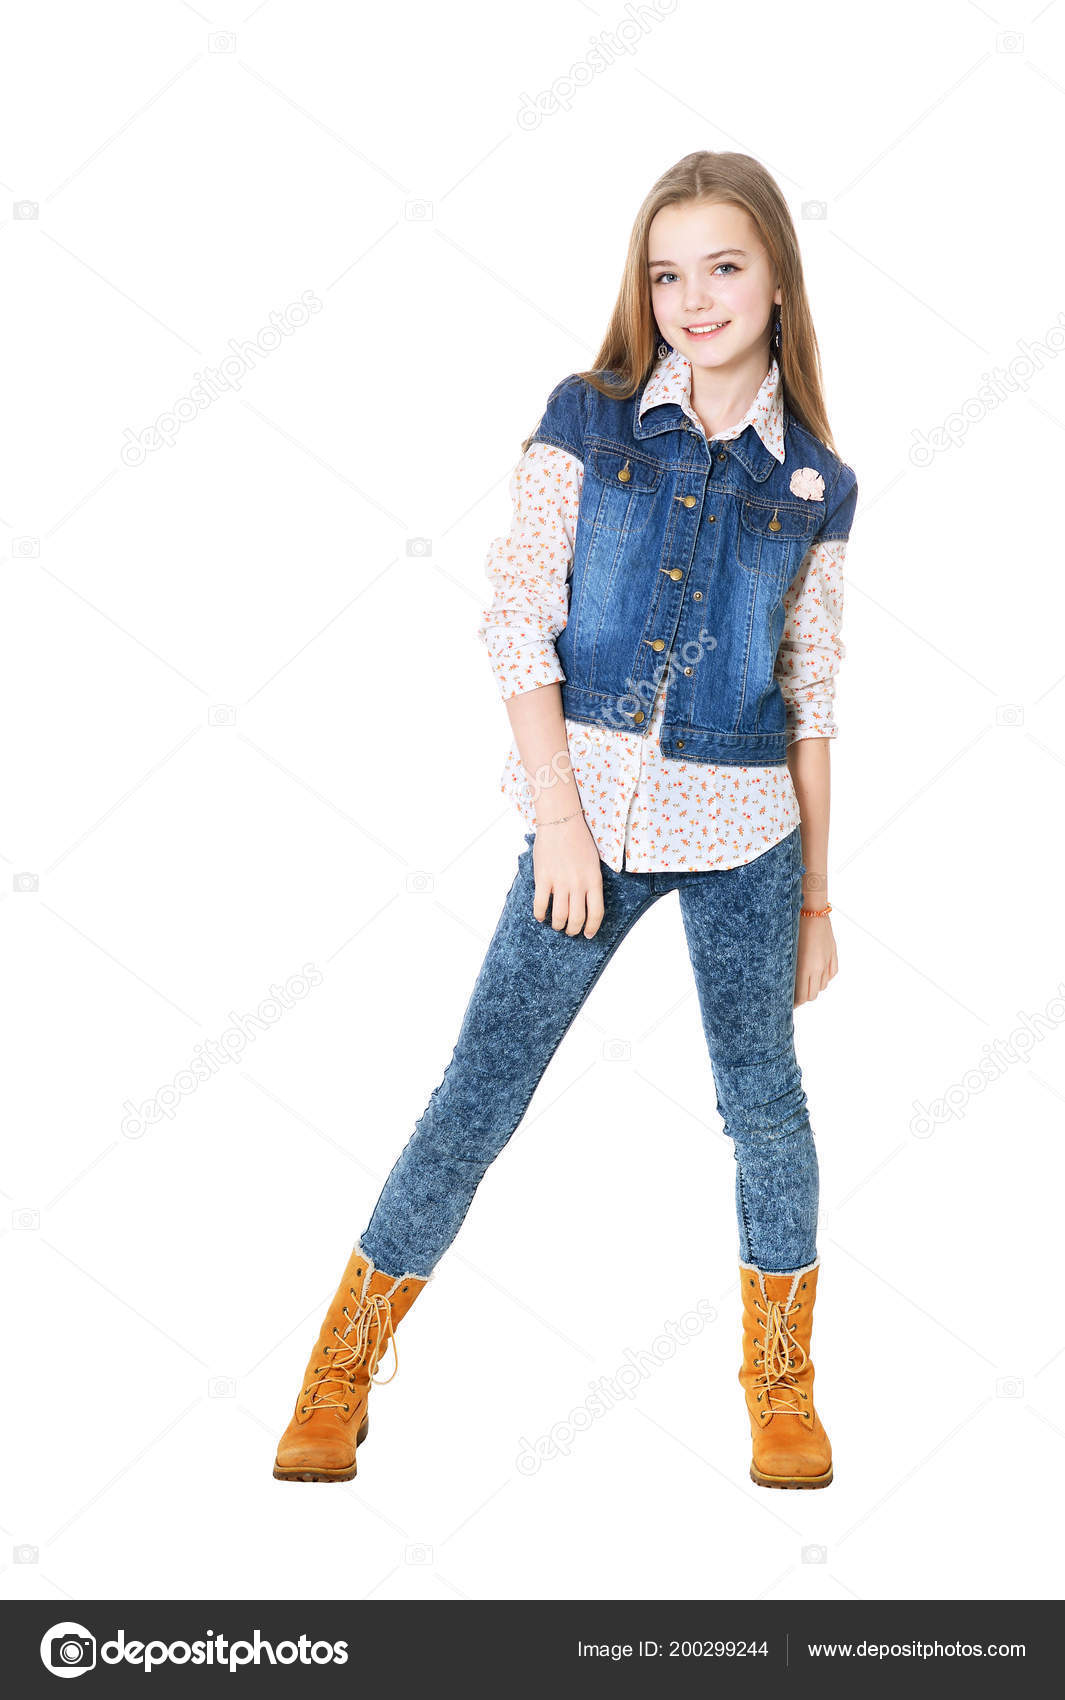 b043d3333b2 Happy Little Girl Jeans Posing Isolated White Background — Stock Photo